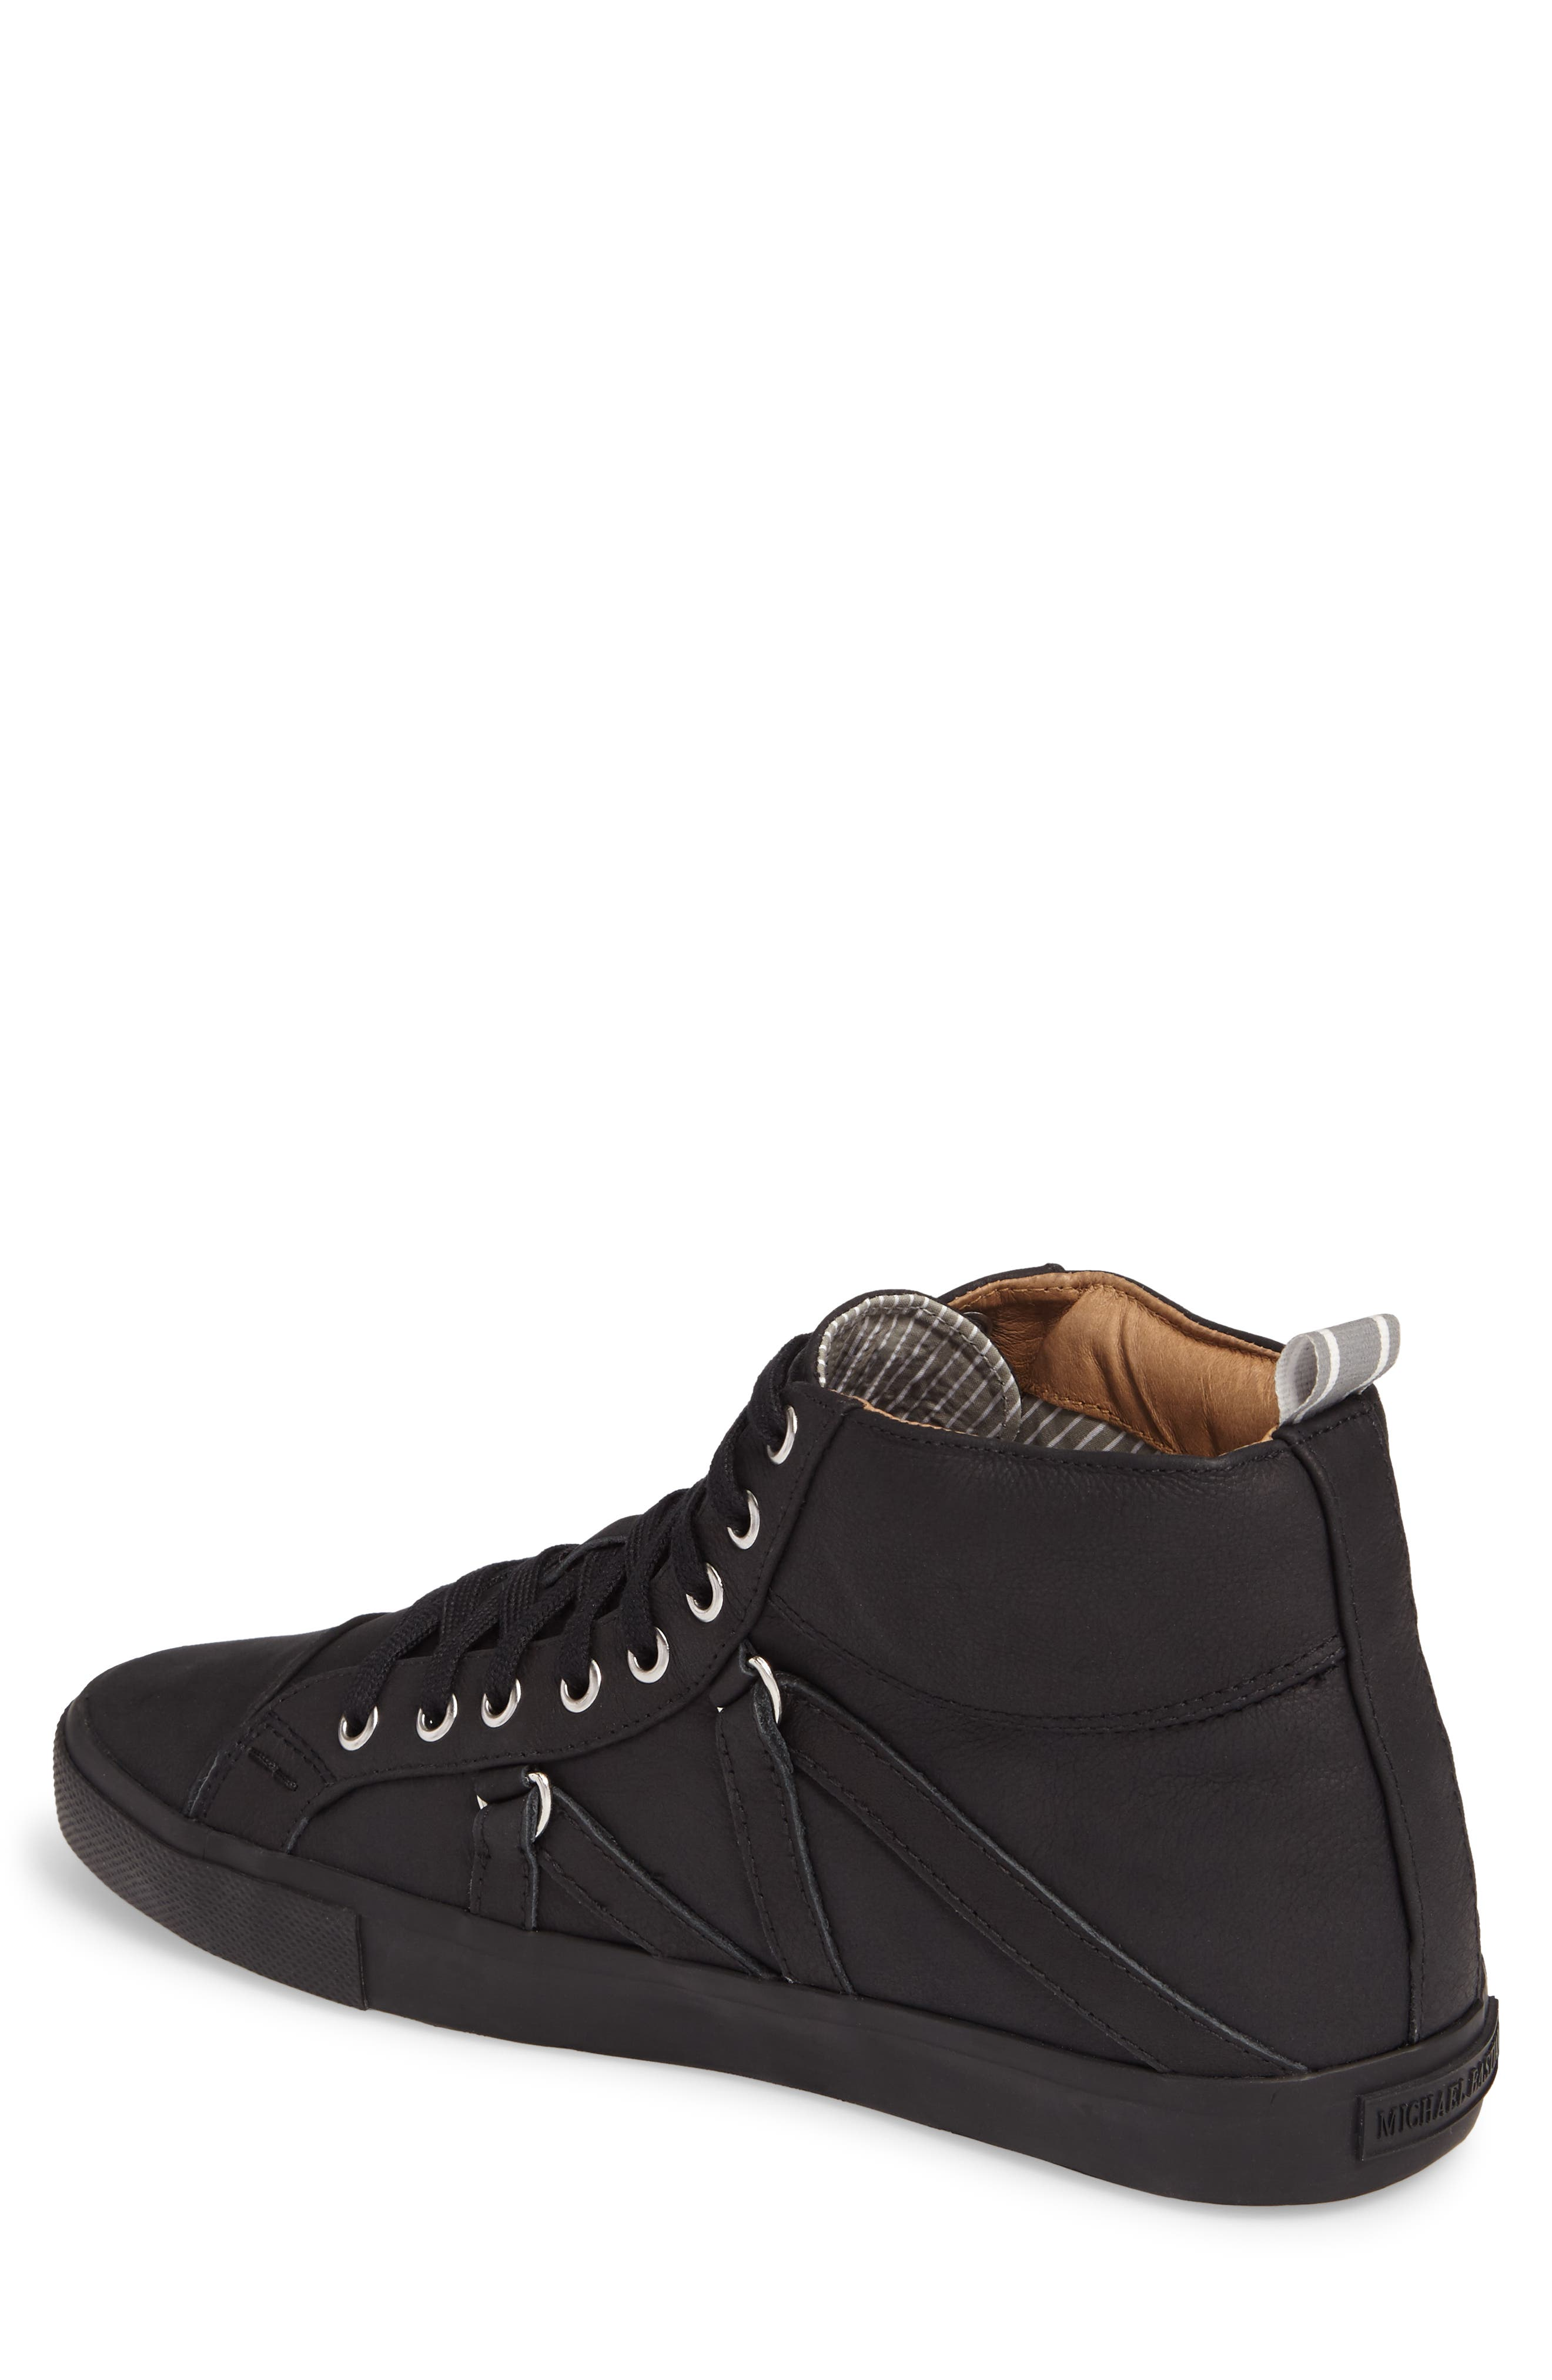 Signature High Top Sneaker,                             Alternate thumbnail 2, color,                             NERO LEATHER